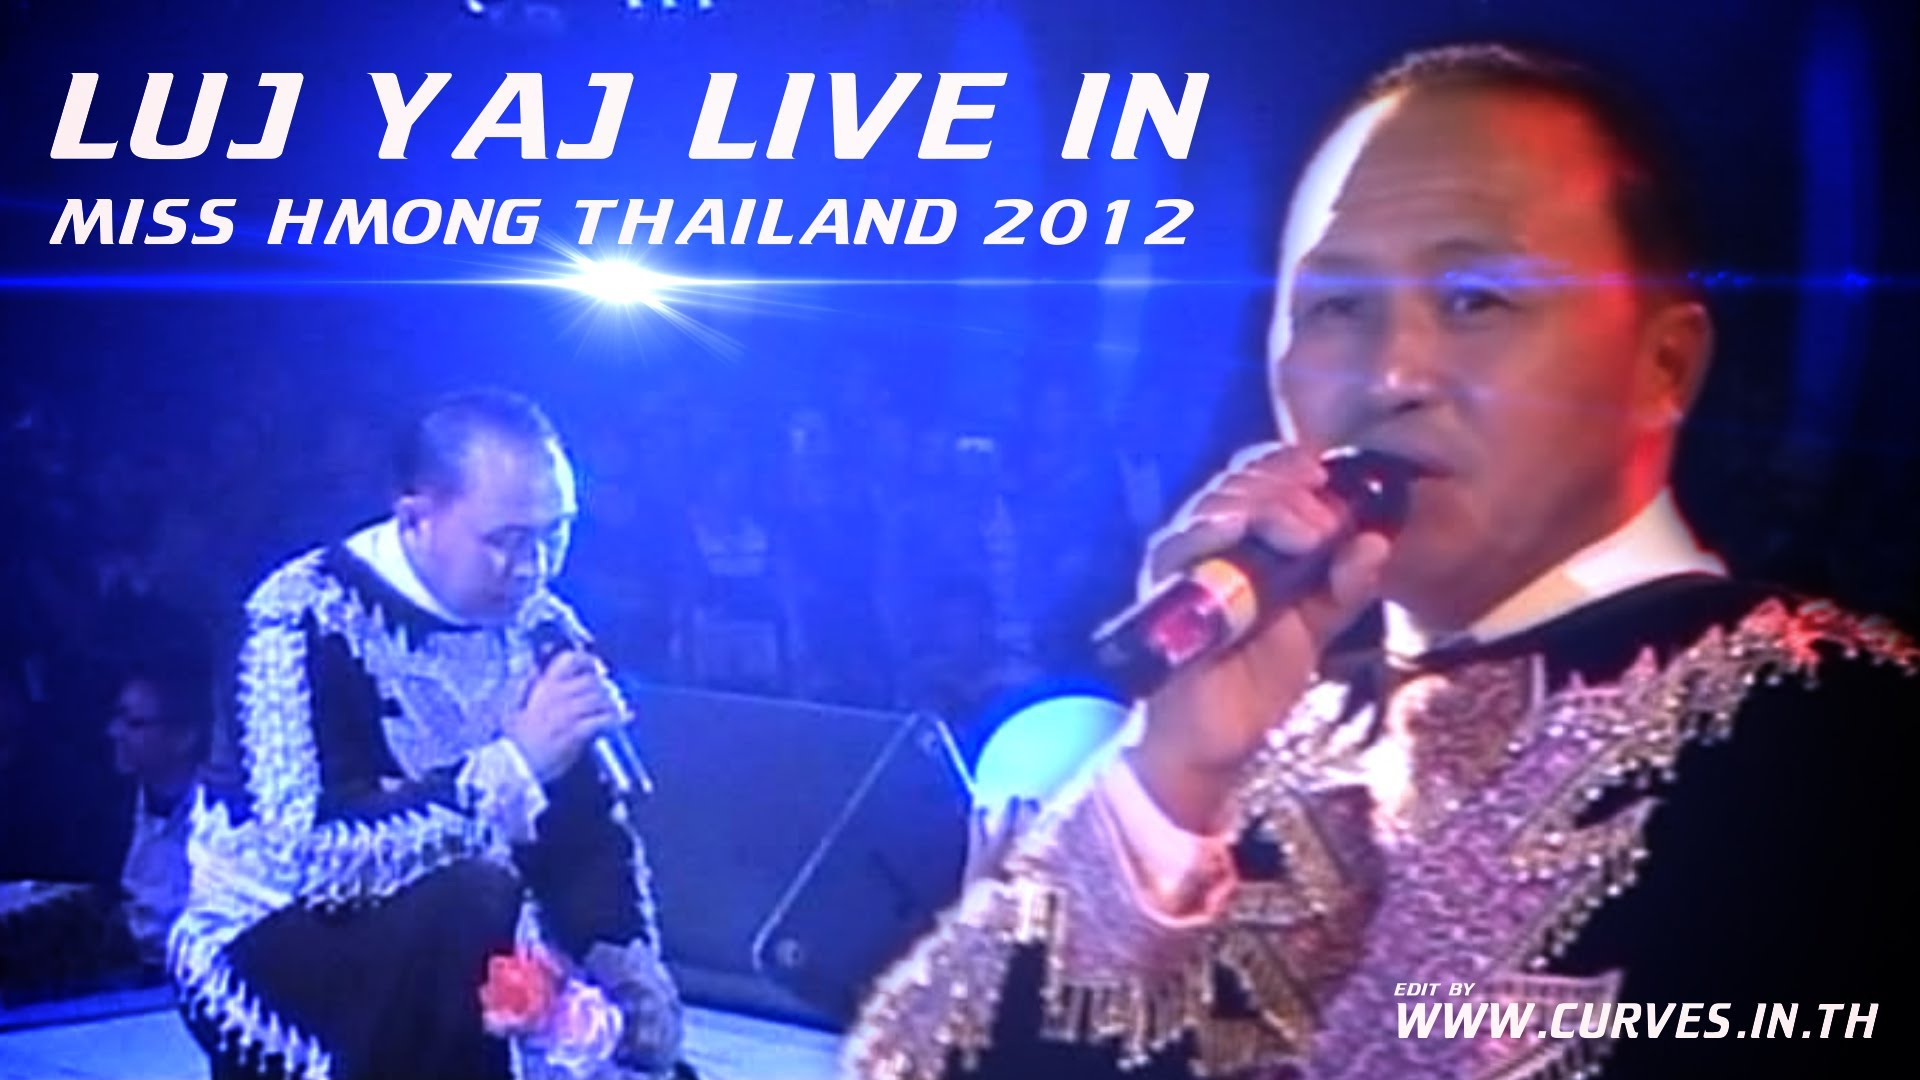 LUJ YAJ Live In Miss Hmong Thailand 2012